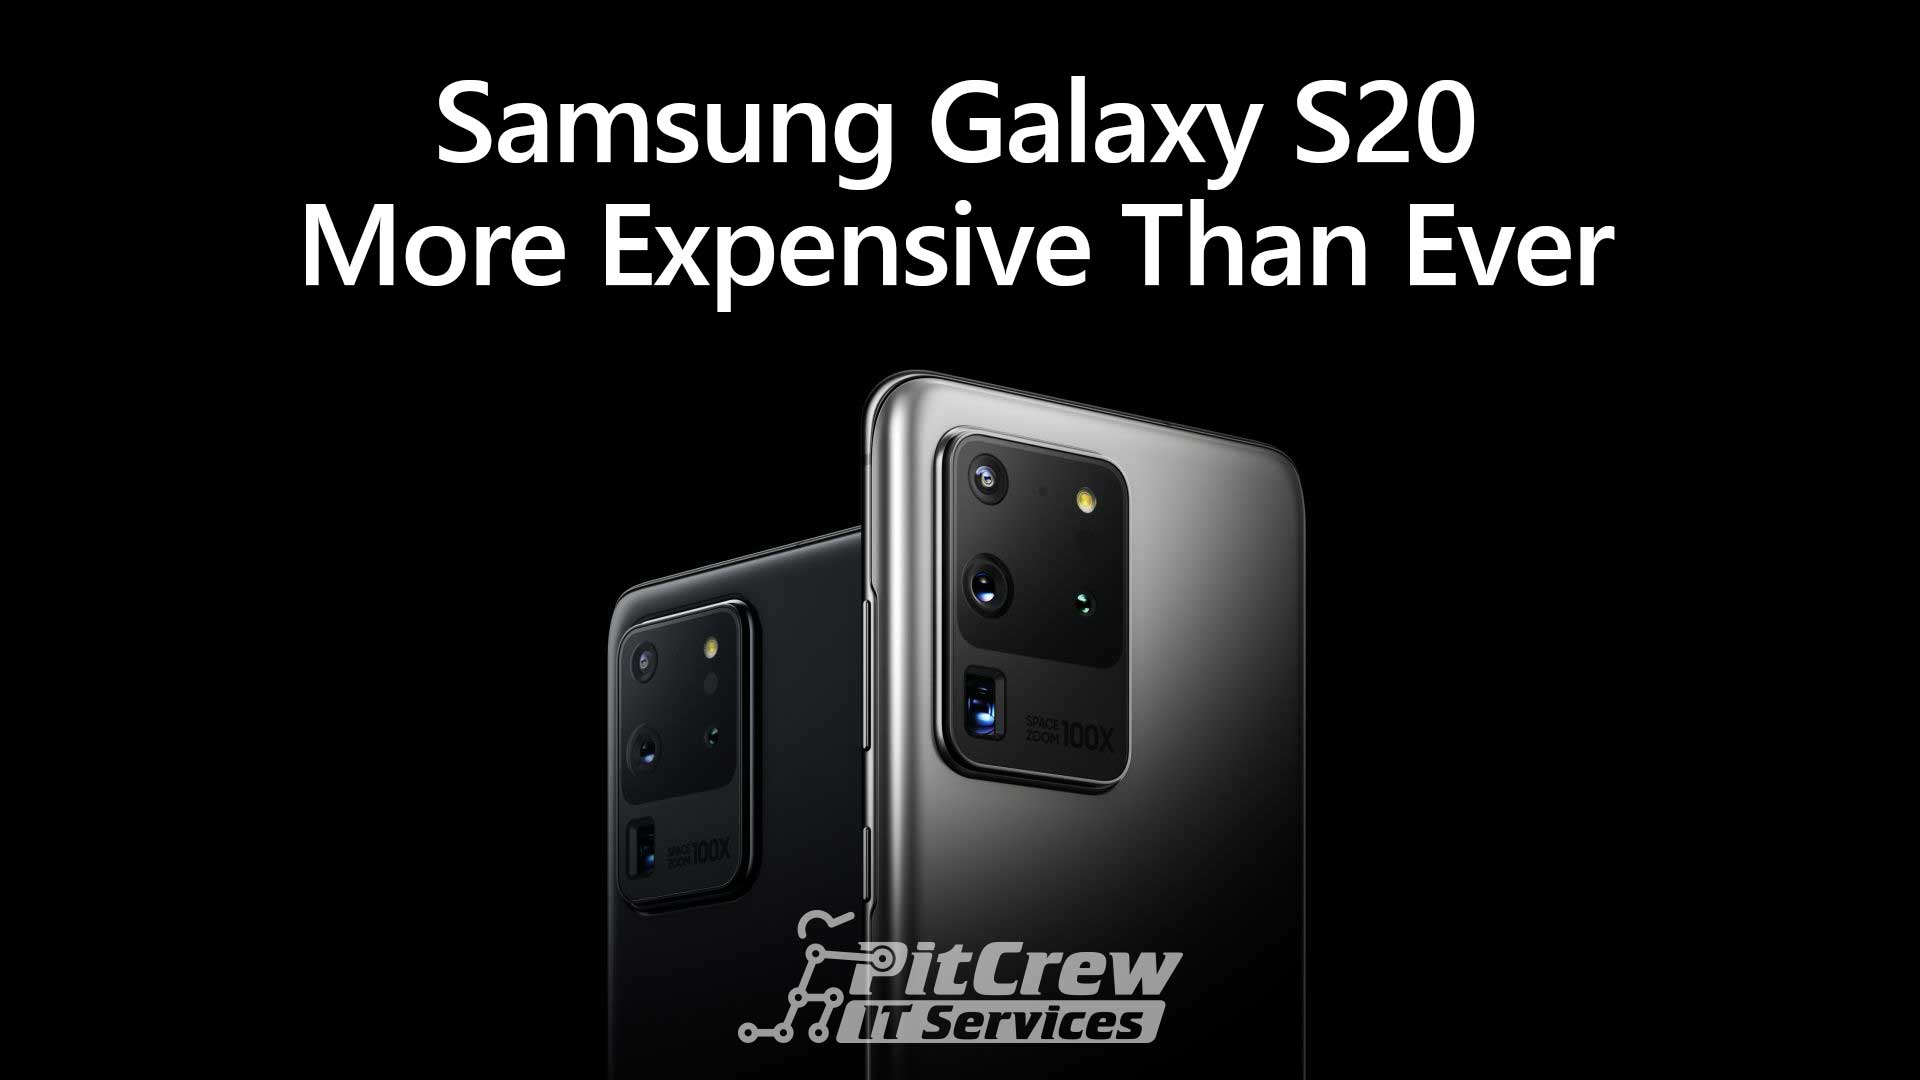 Samsung Galaxy S20 - More Expensive Than Ever